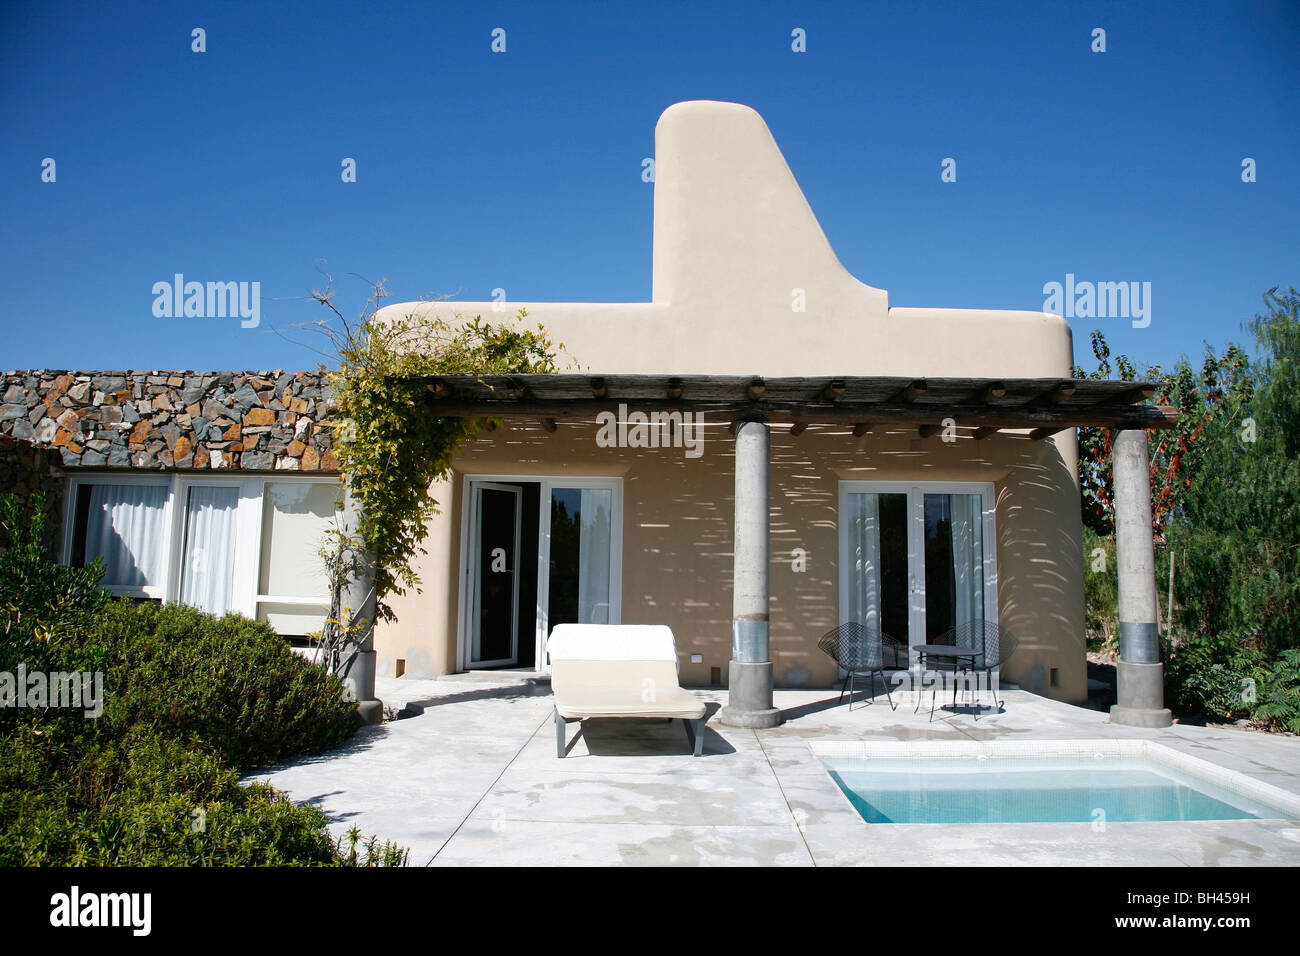 The exterior of a suit in the luxurious Cavas Wine Lodge, Lujan de Cuyo, Mendoza, Argentina. - Stock Image